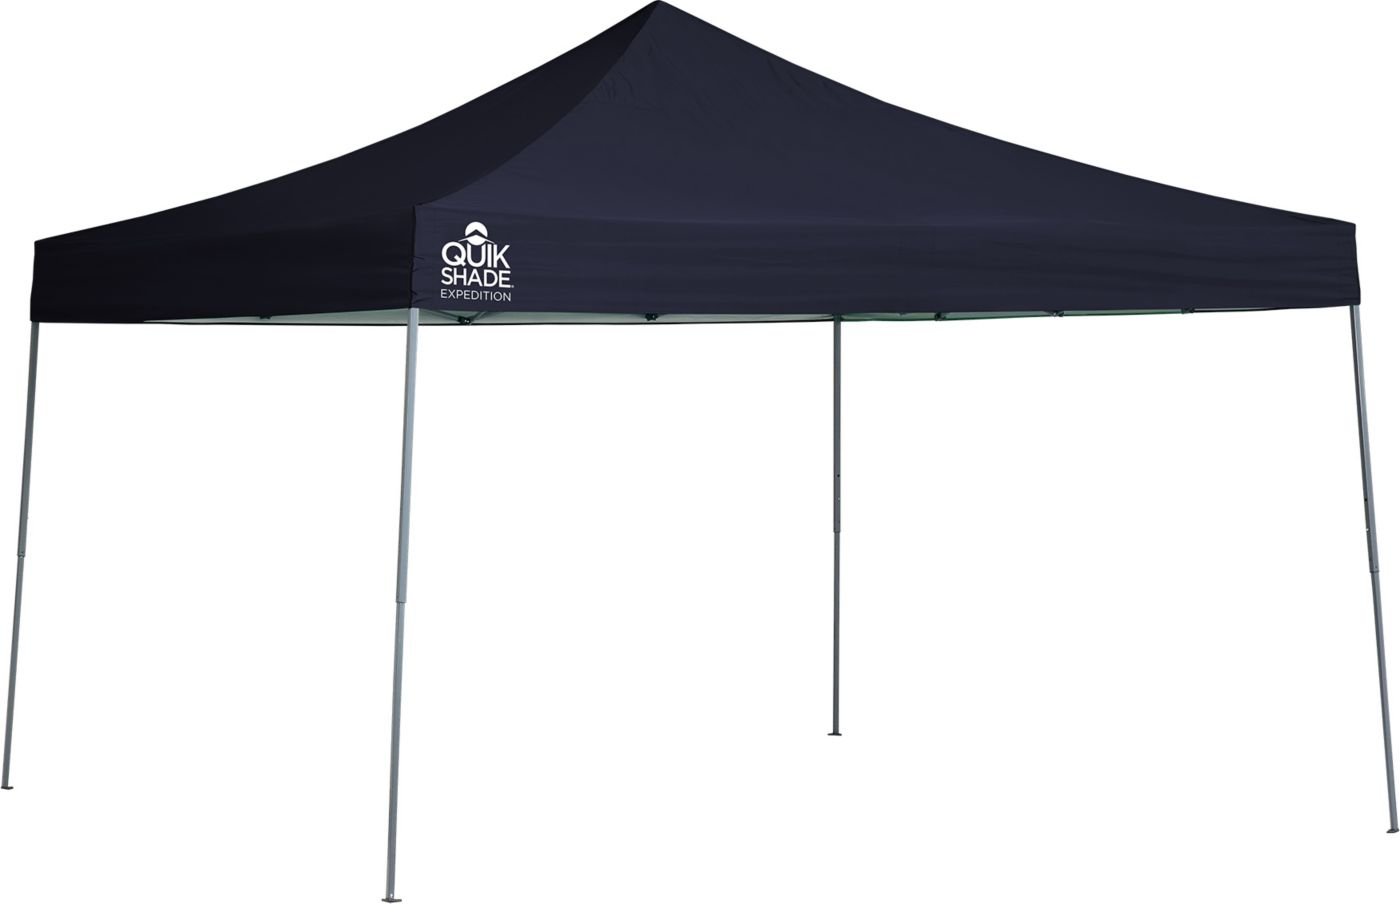 Quik Shade 12' x 12' Expedition EX144 Canopy